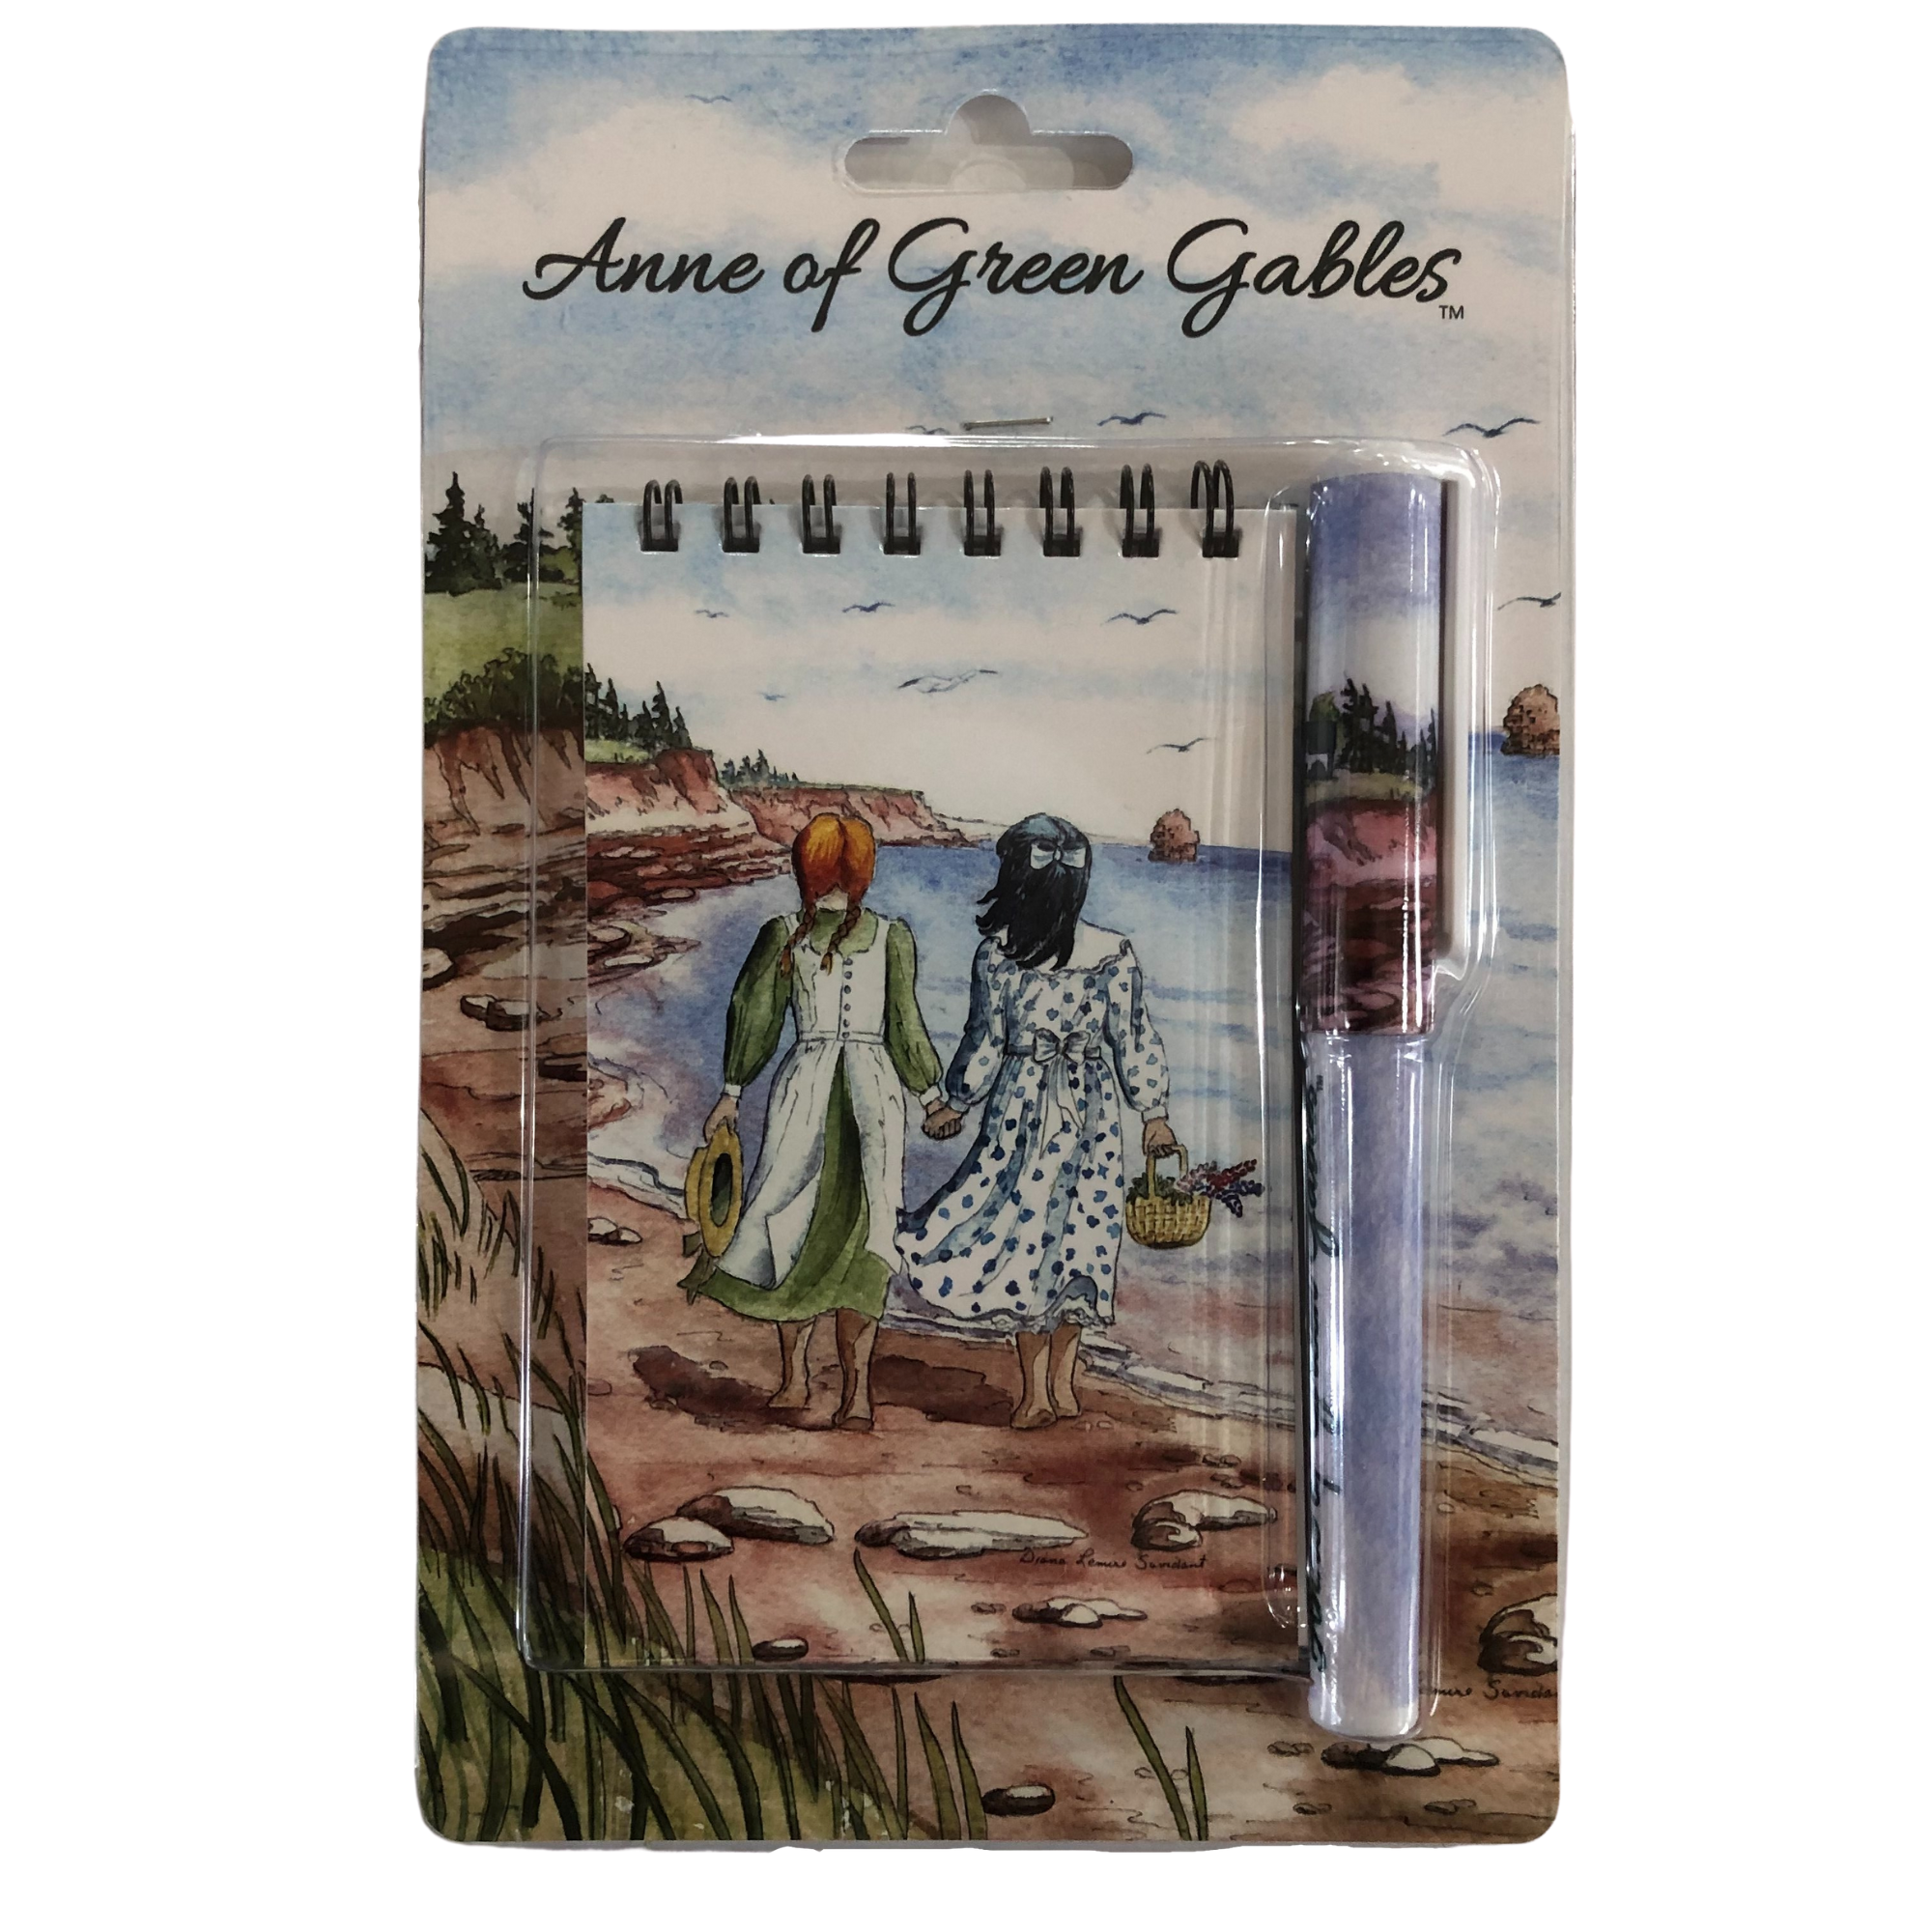 Anne of Green Gables Kindred Spirits Stationary Set